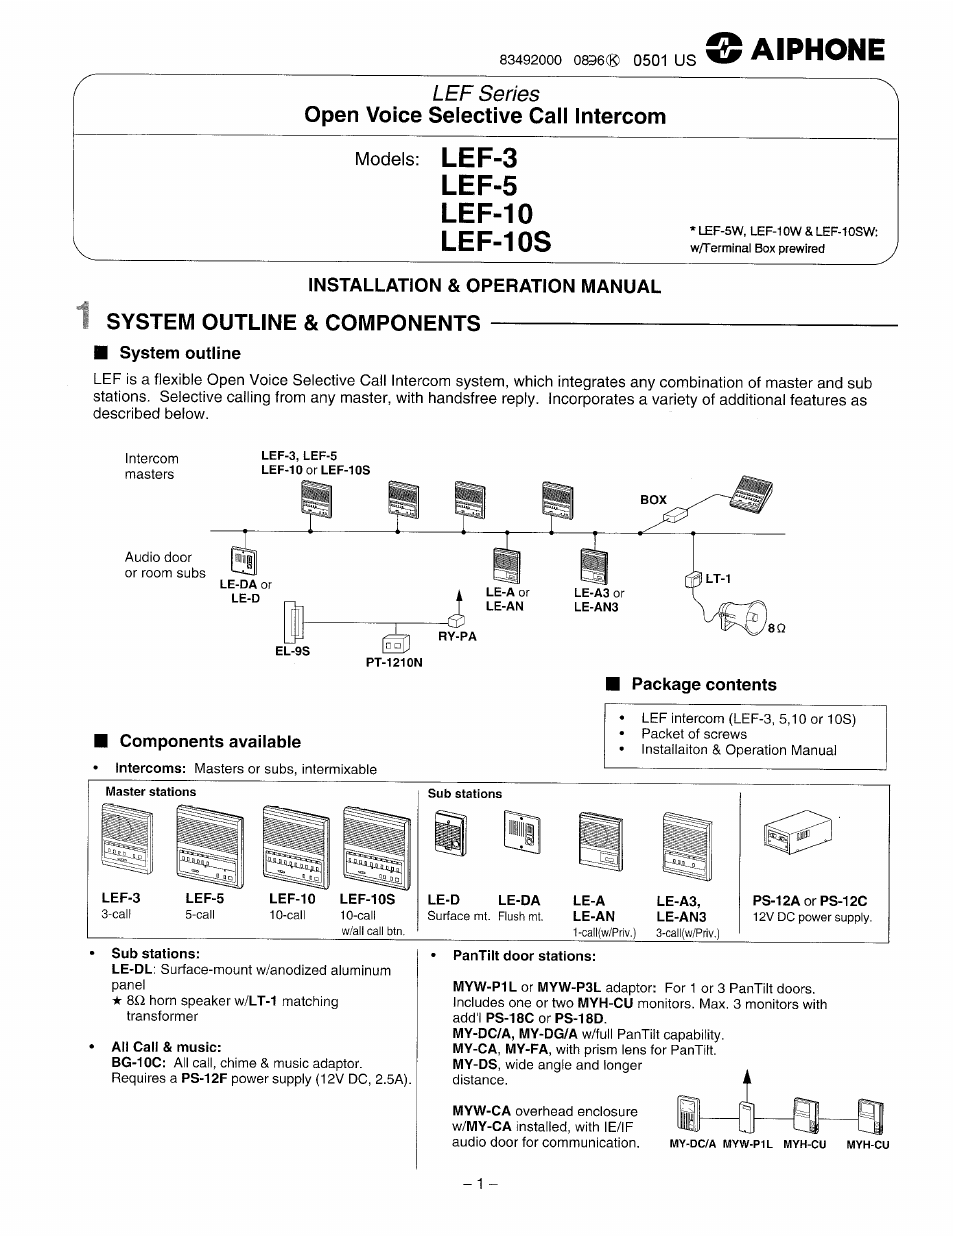 aiphone lef 3 page1 aiphone lef 3 user manual 12 pages also for lef 10, lef 5 aiphone lef 10s wiring diagram at reclaimingppi.co